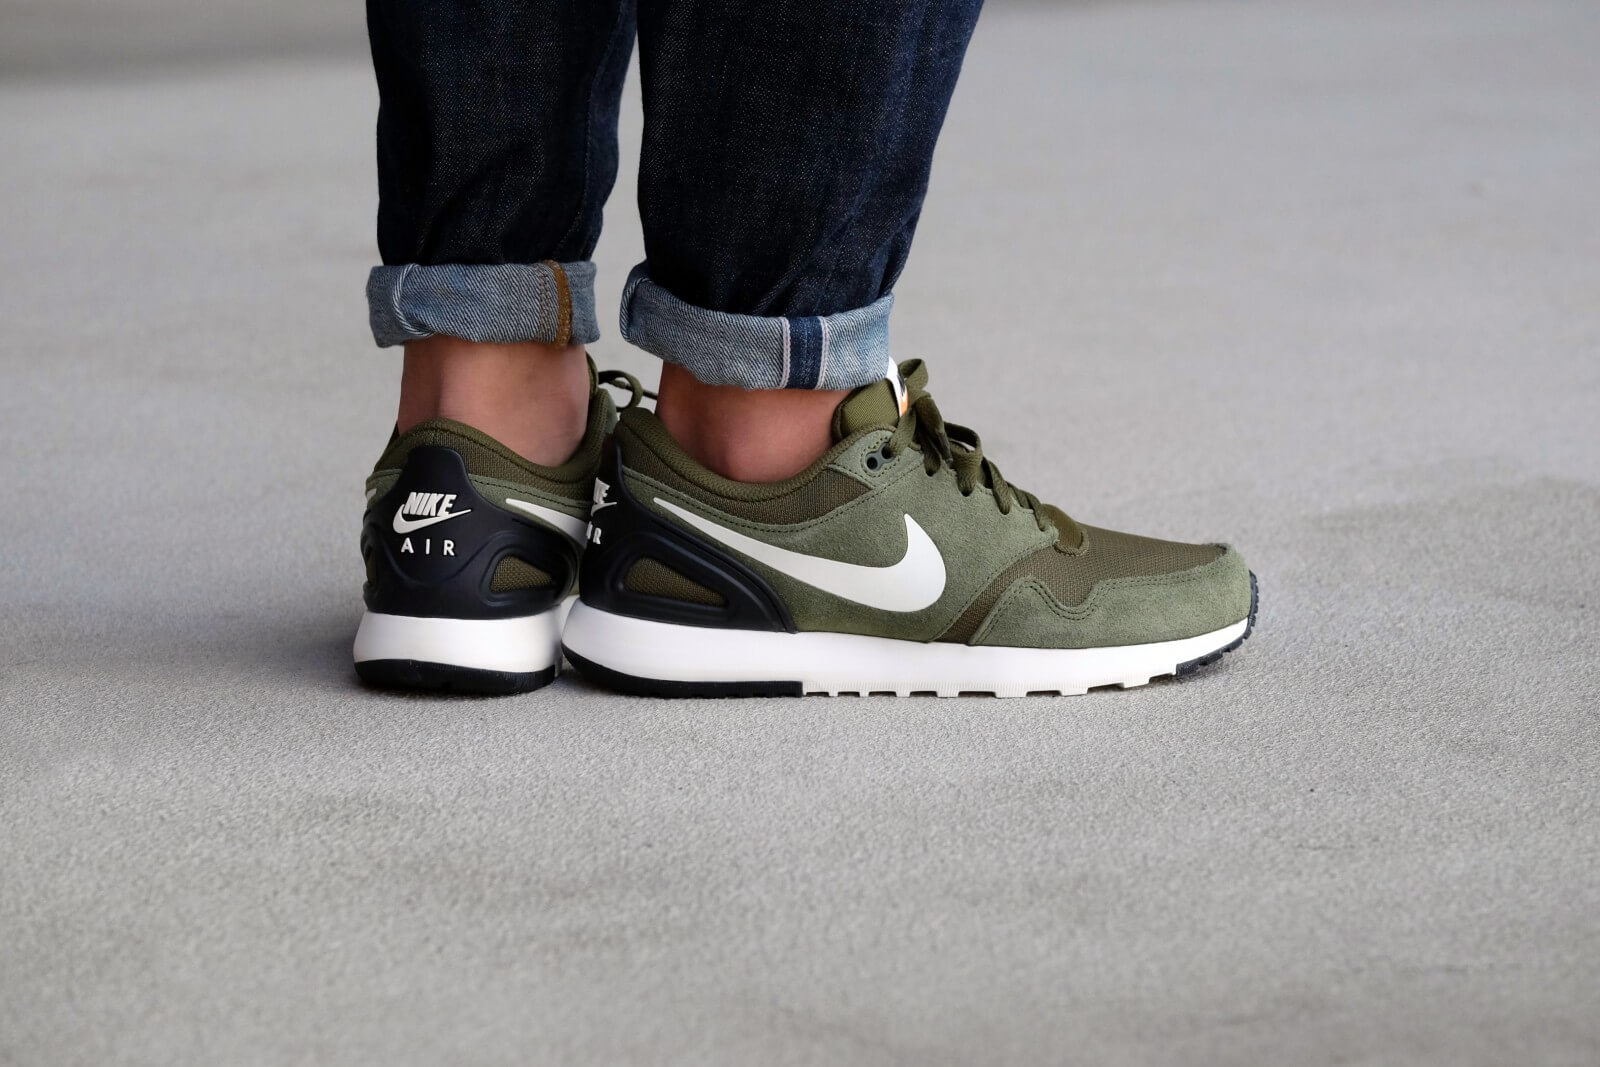 Nike Shoes Gray And Green